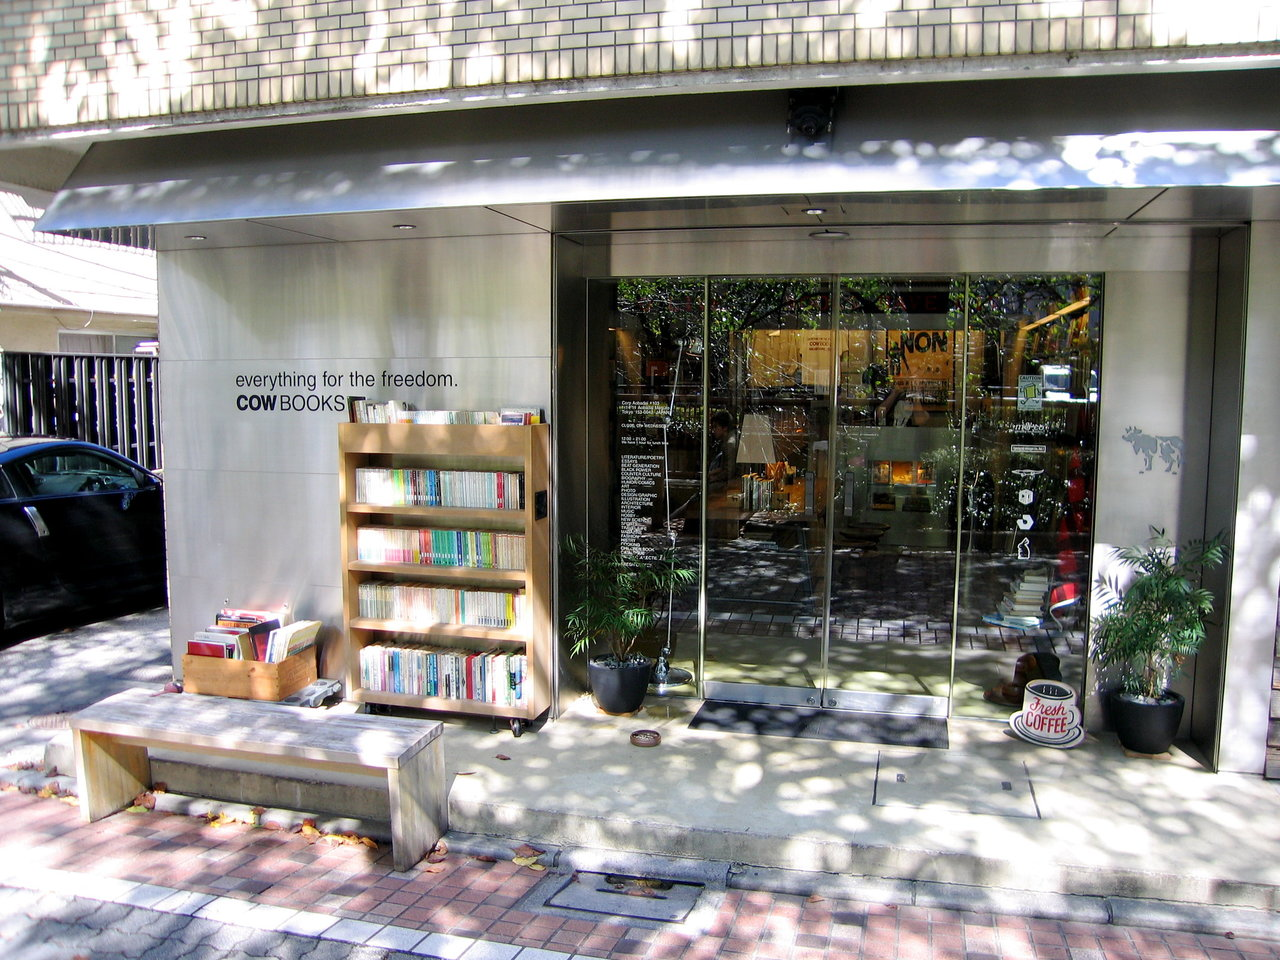 De boekenwinkel Cow Books in Nakameguro